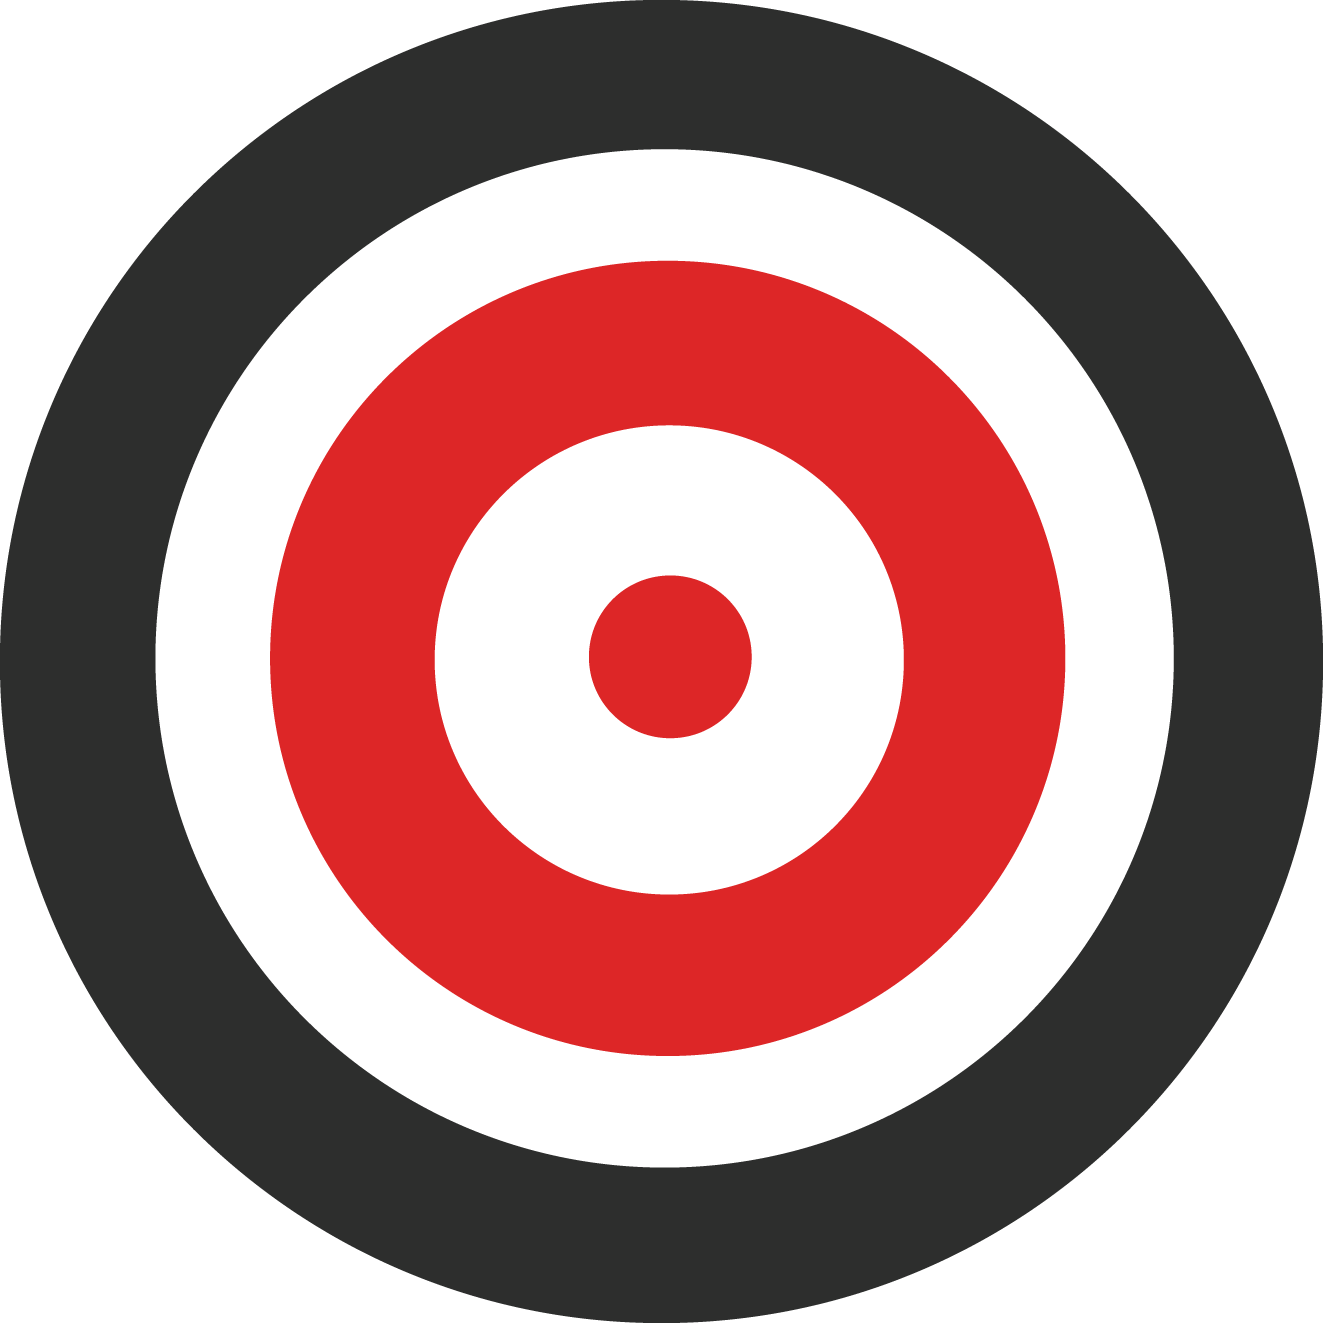 Target Symbol 4534 Free Icons And Png Backgrounds